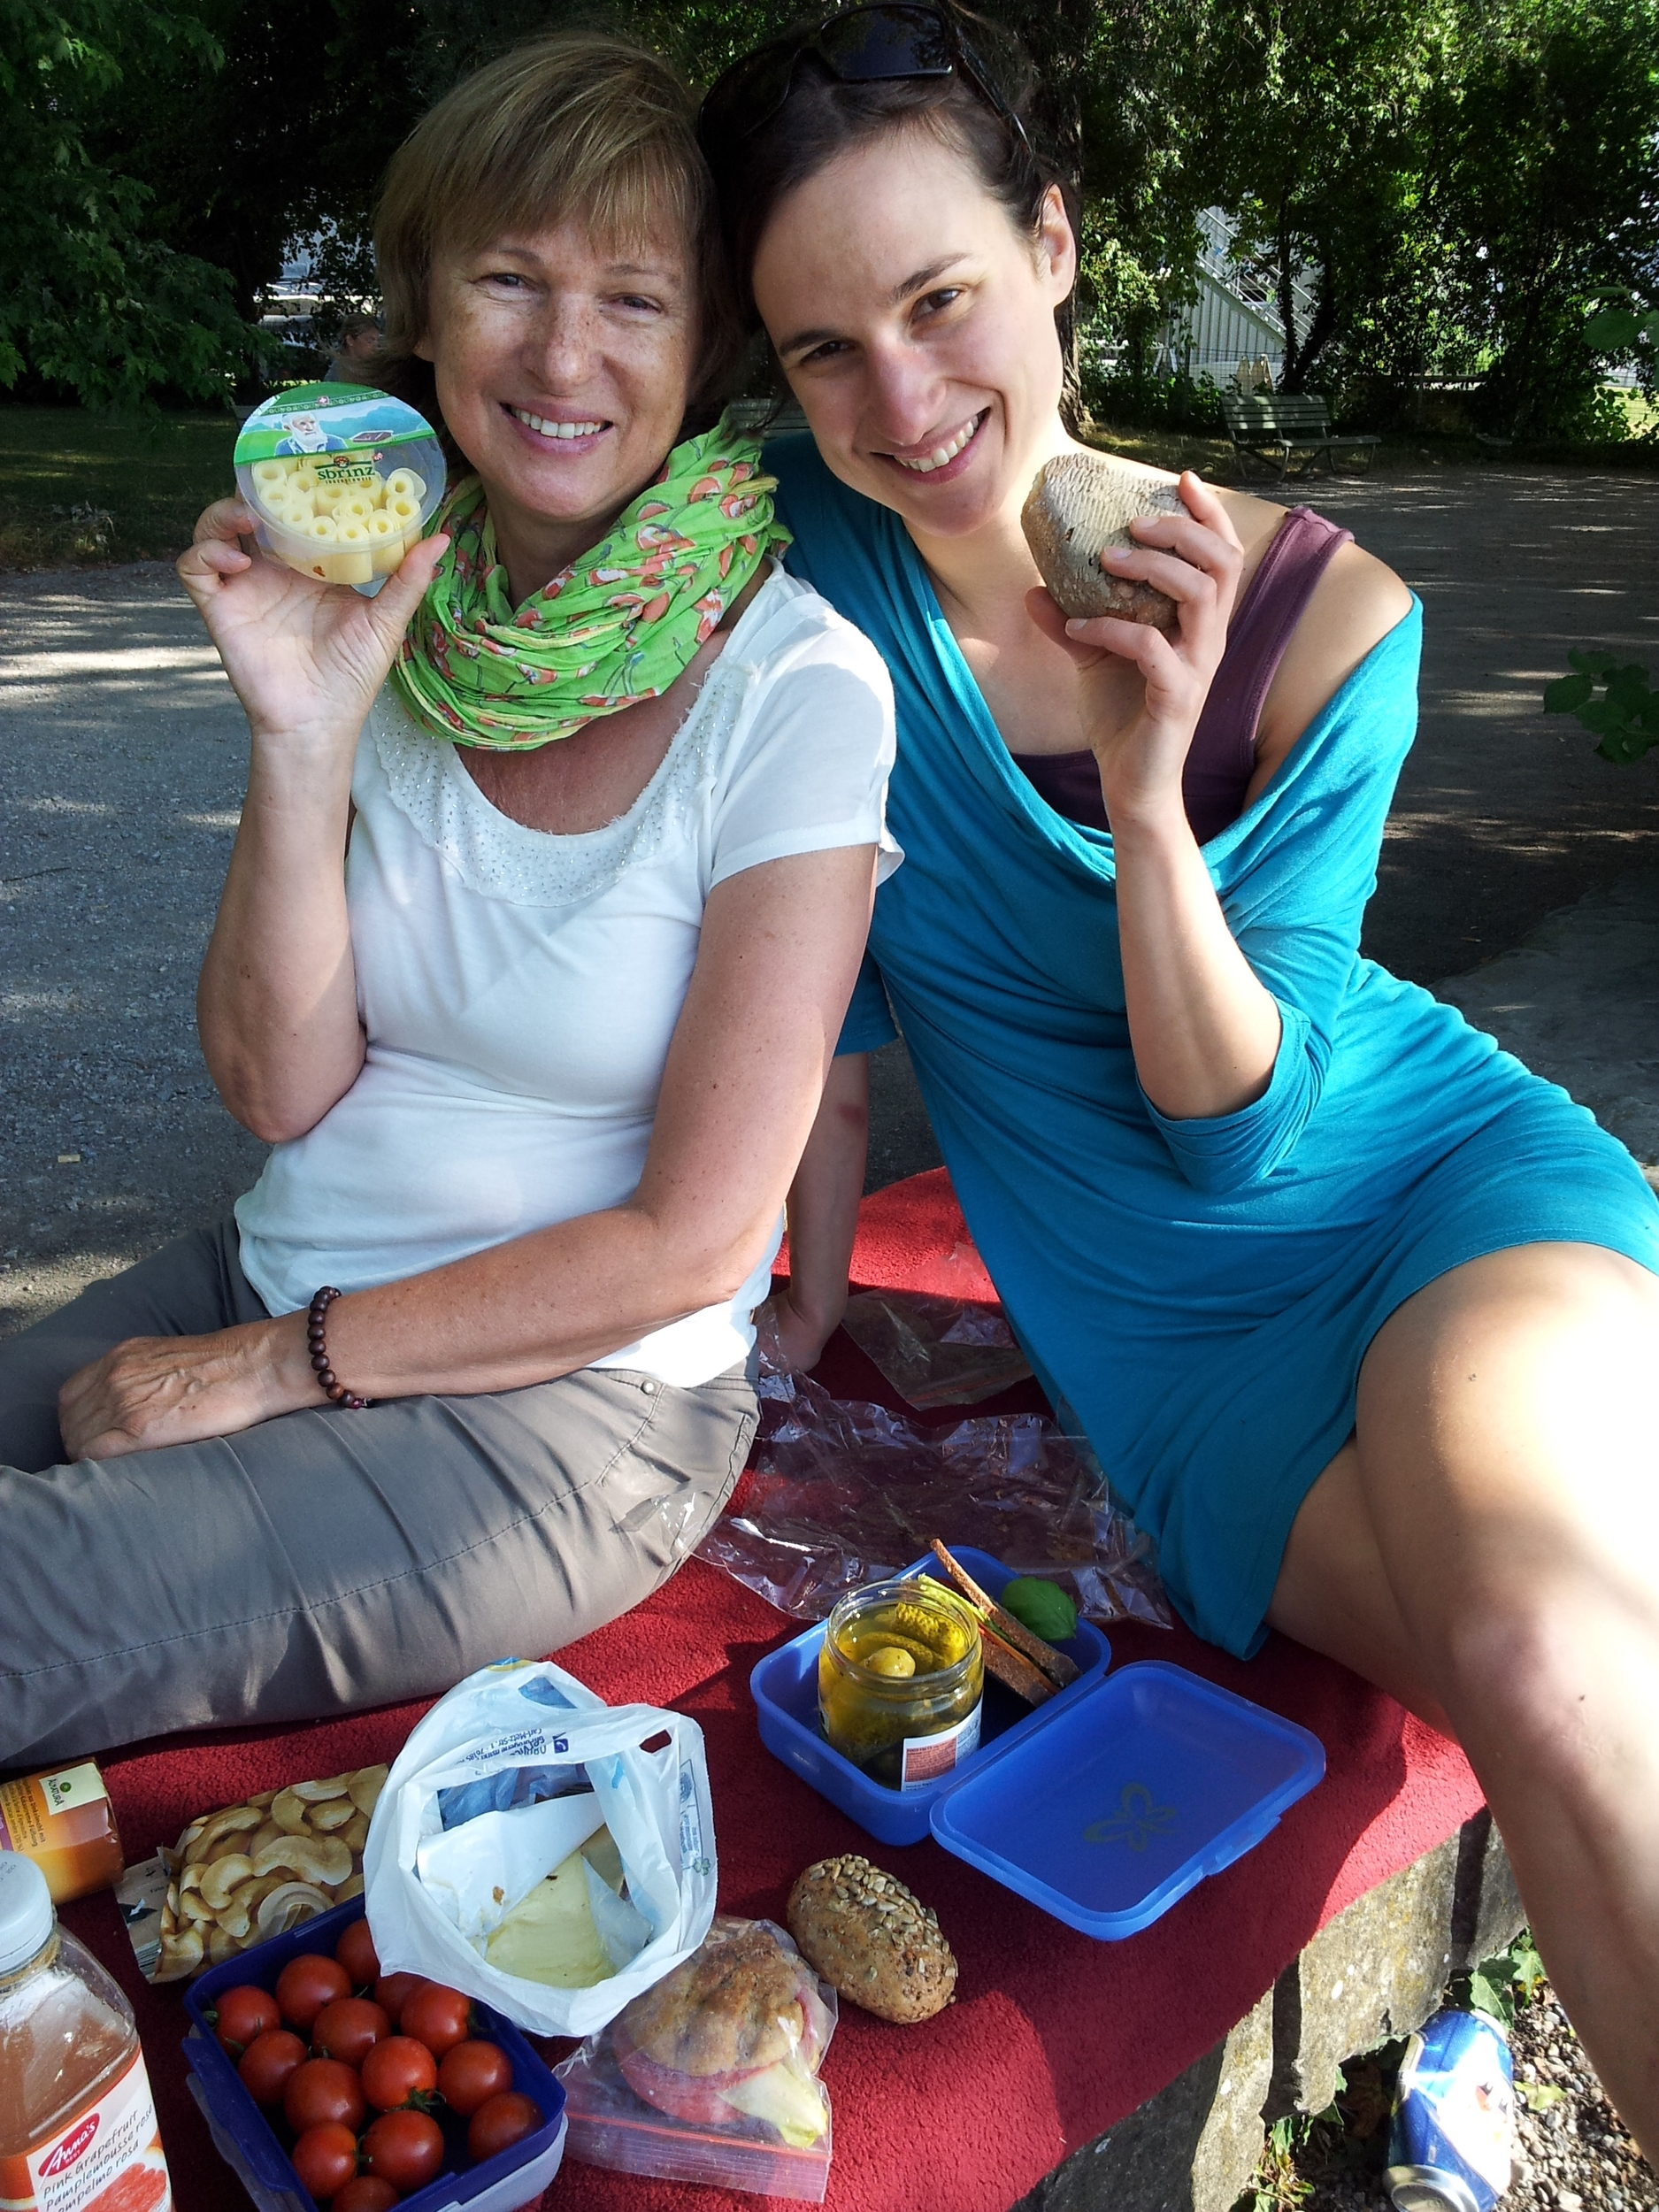 After a 24 hour flight one must picnic and swim in the Zurich lake with mum and sis